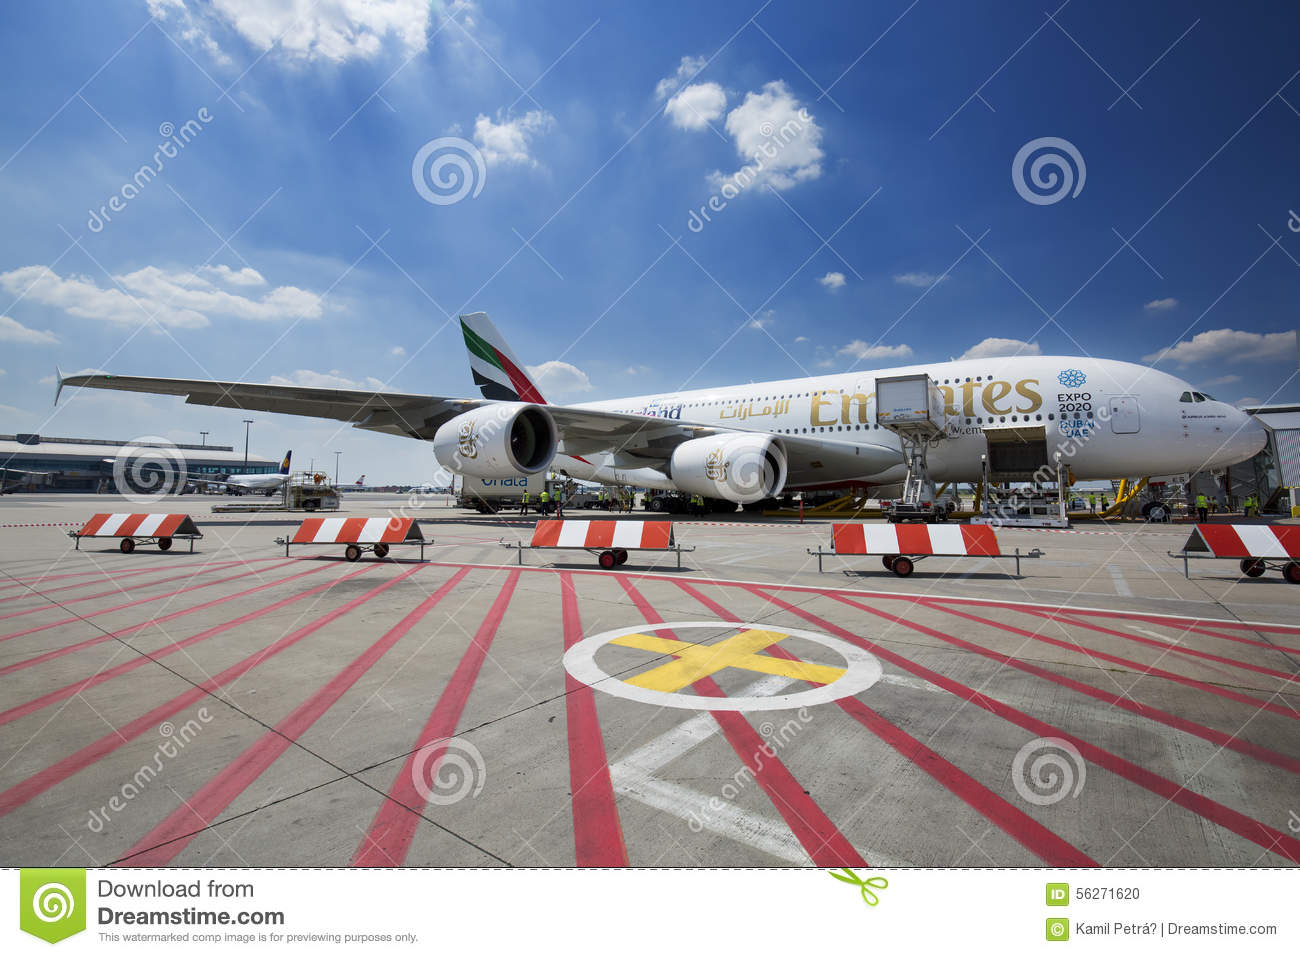 PRAGUE - July 1, 2015: Emirates Airbus A380 At Vaclav Havel